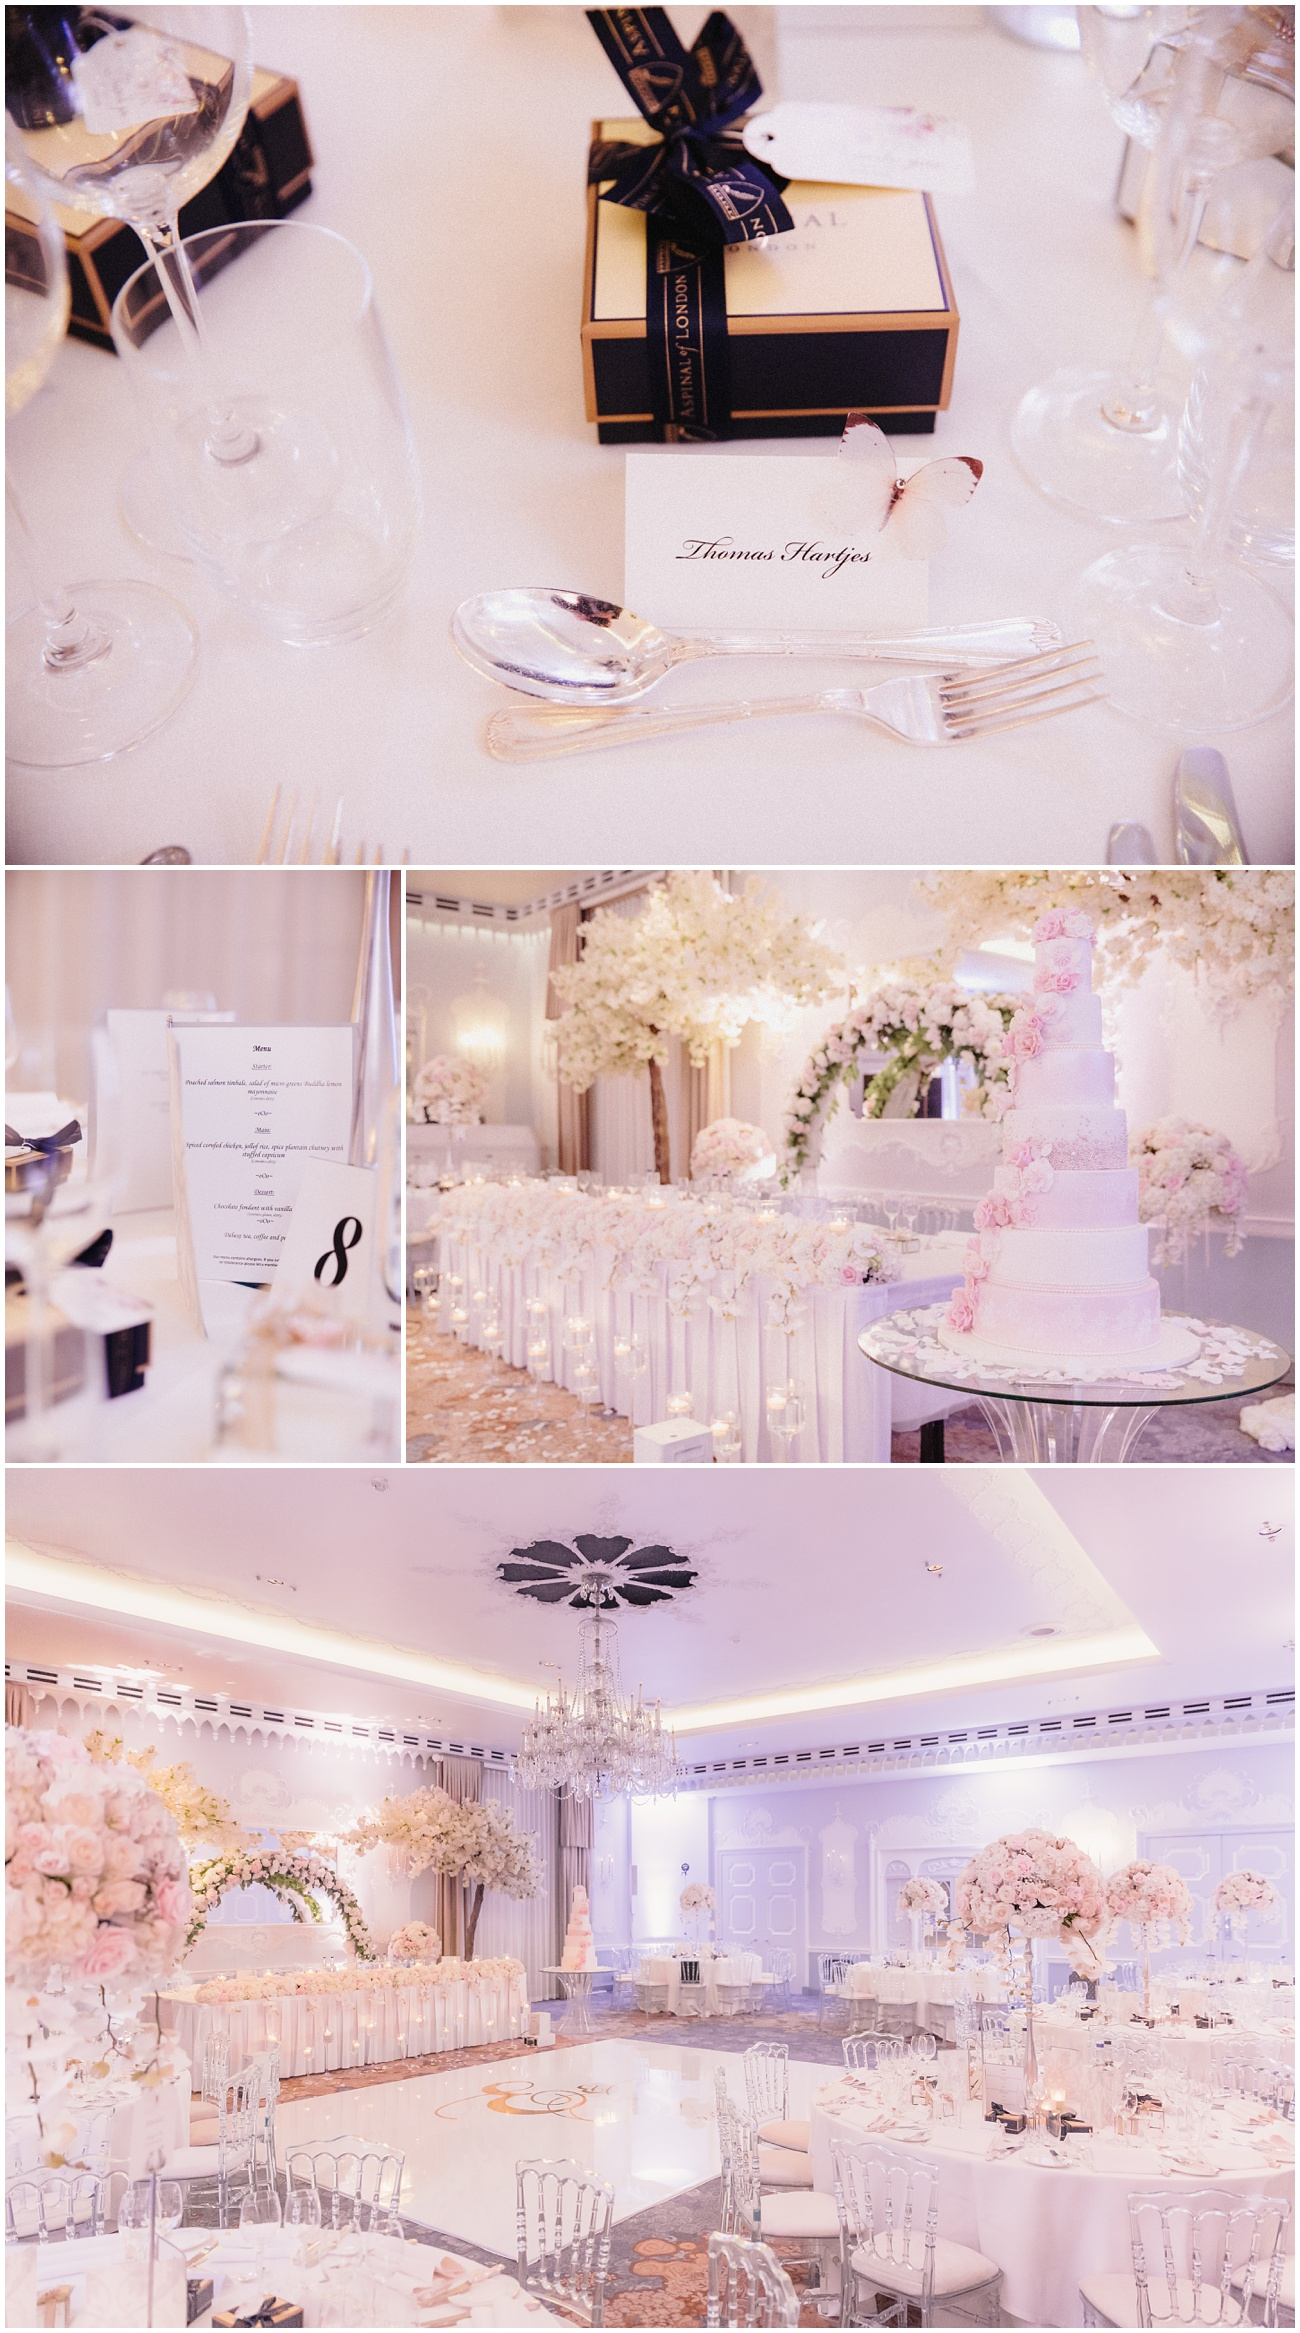 The wedding reception details including the cake, flowers, menus and the decorated tables and chairs